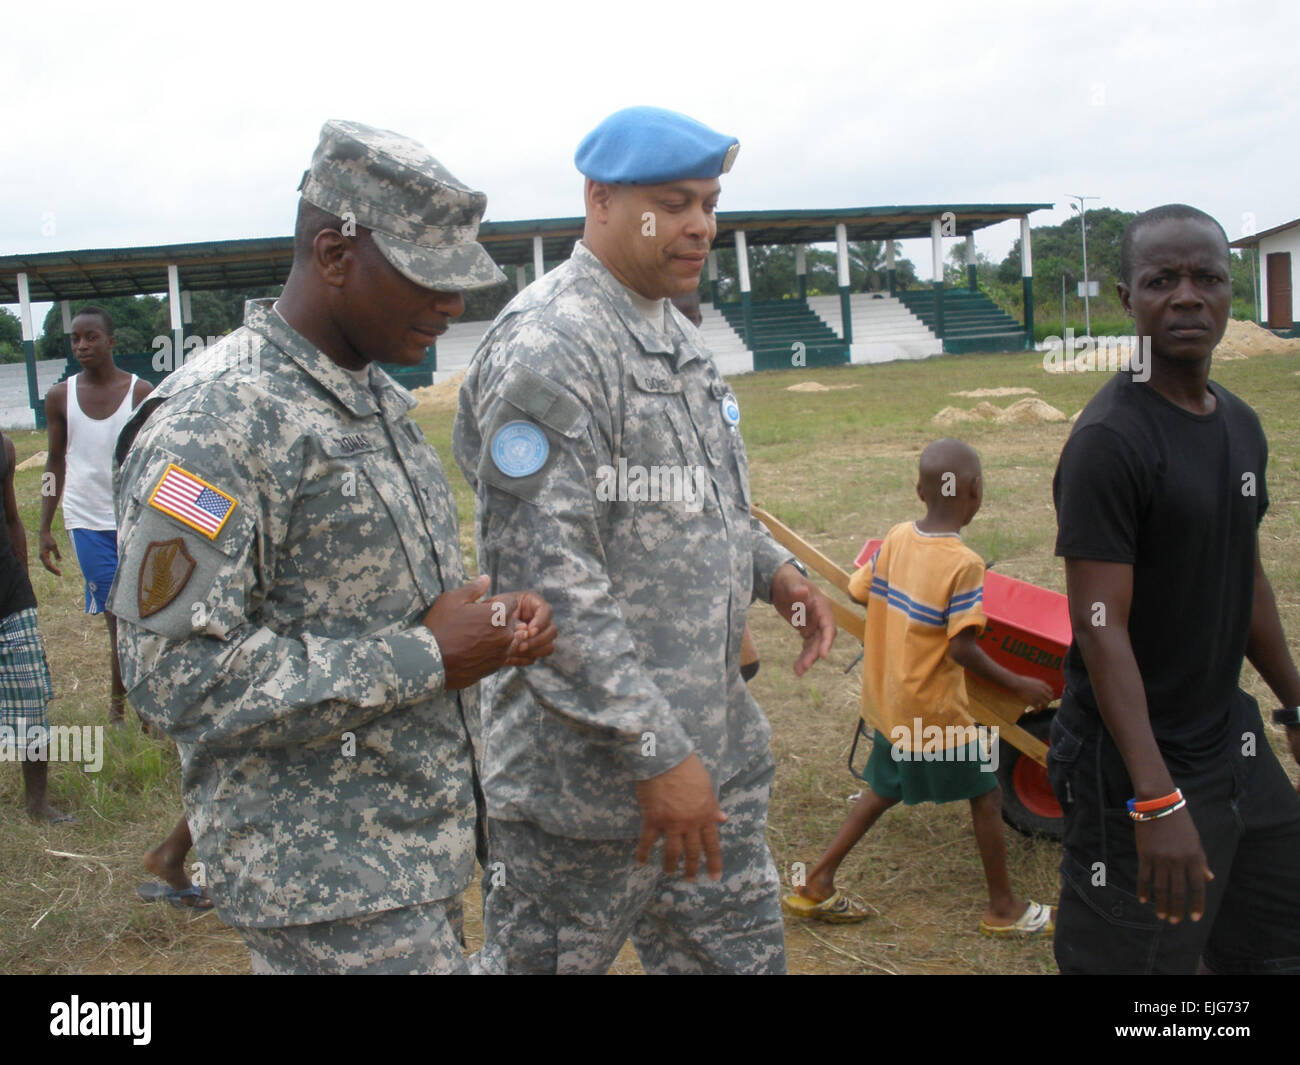 Lt. Col Berkley Gore,USANG, deployed as the UN Civil Affairs Chief in Liberia,  gives COL Walter Thomas II, USA, - Stock Image